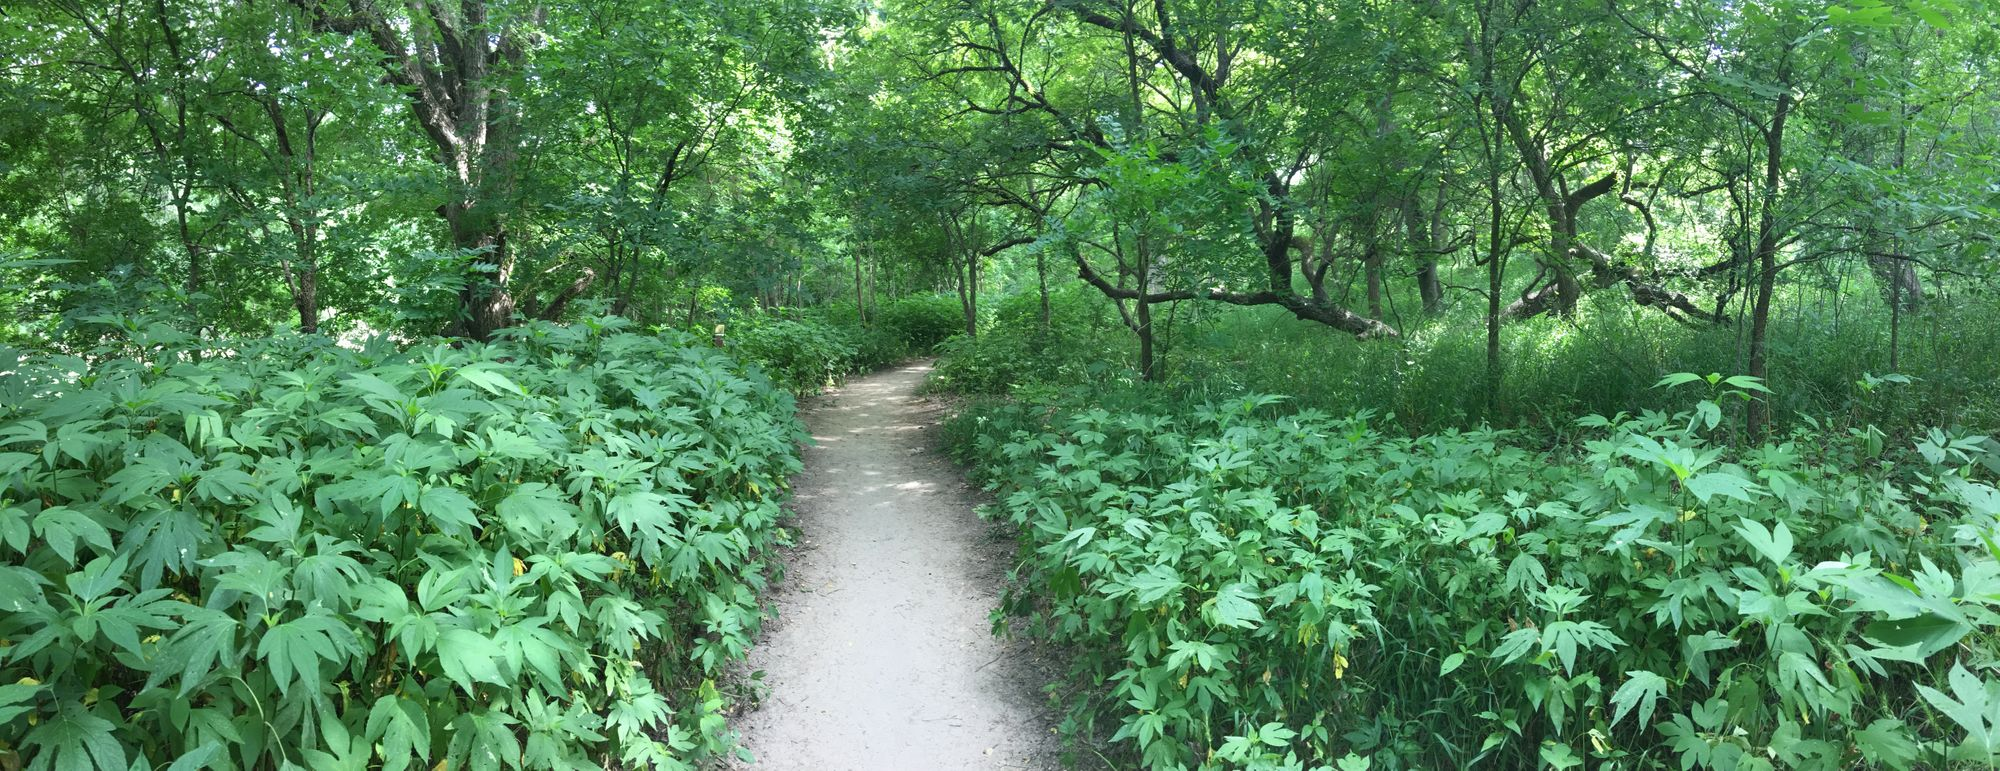 My Green Space: Barton Creek Greenbelt